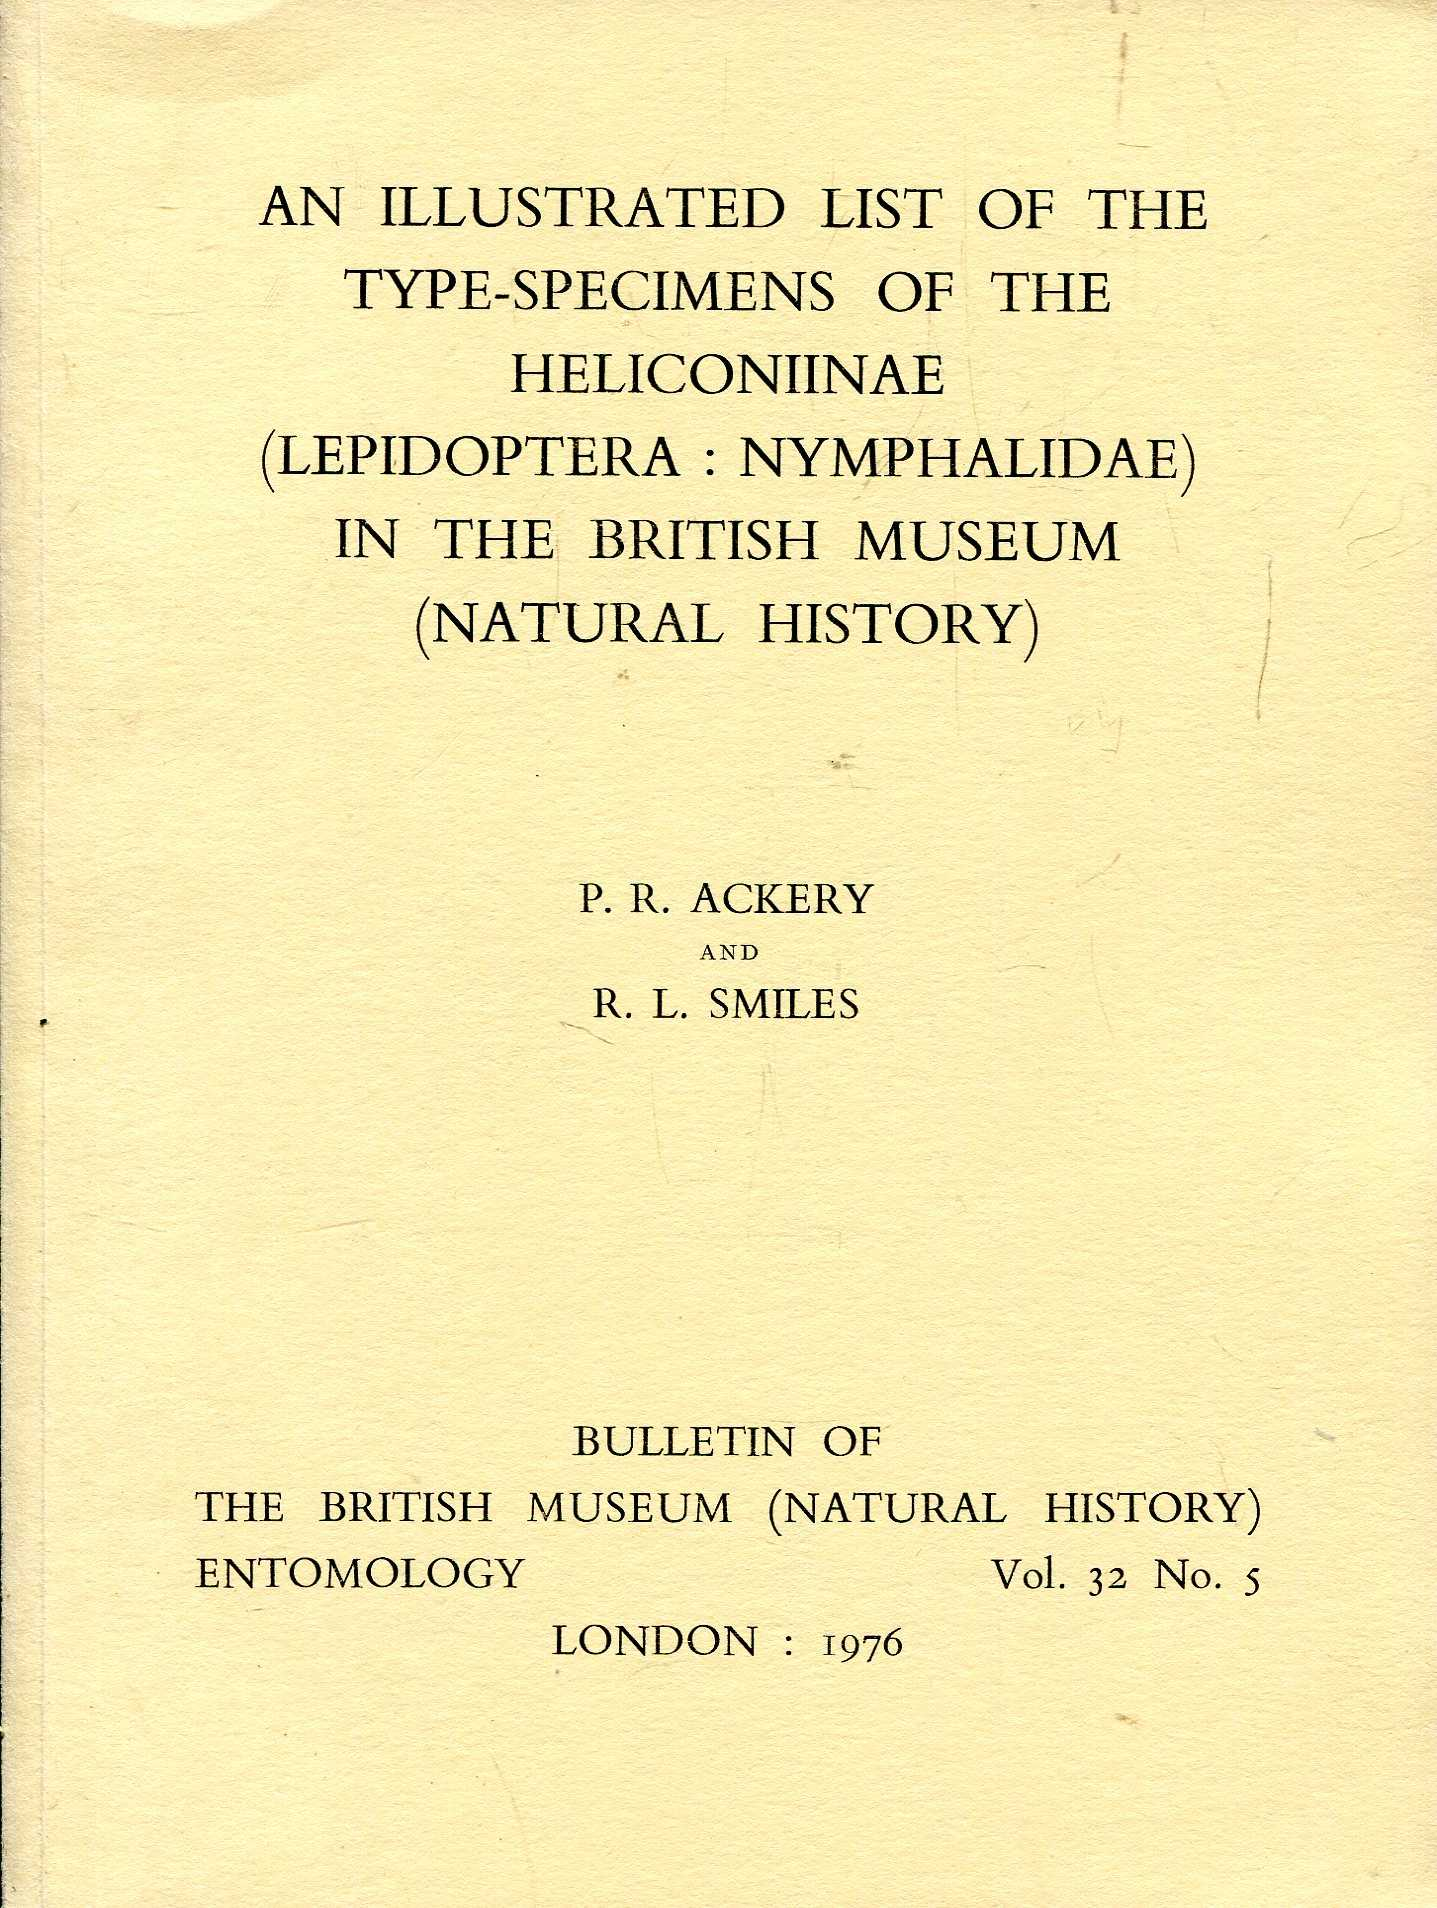 Image for Bulletin of the British Museum (Natural History) Entomology vol 32 No.5 : An Illustrated List of the Type-Specimens of the Heliconiinae (Lepidoptera : Nymphalidae) in the BM